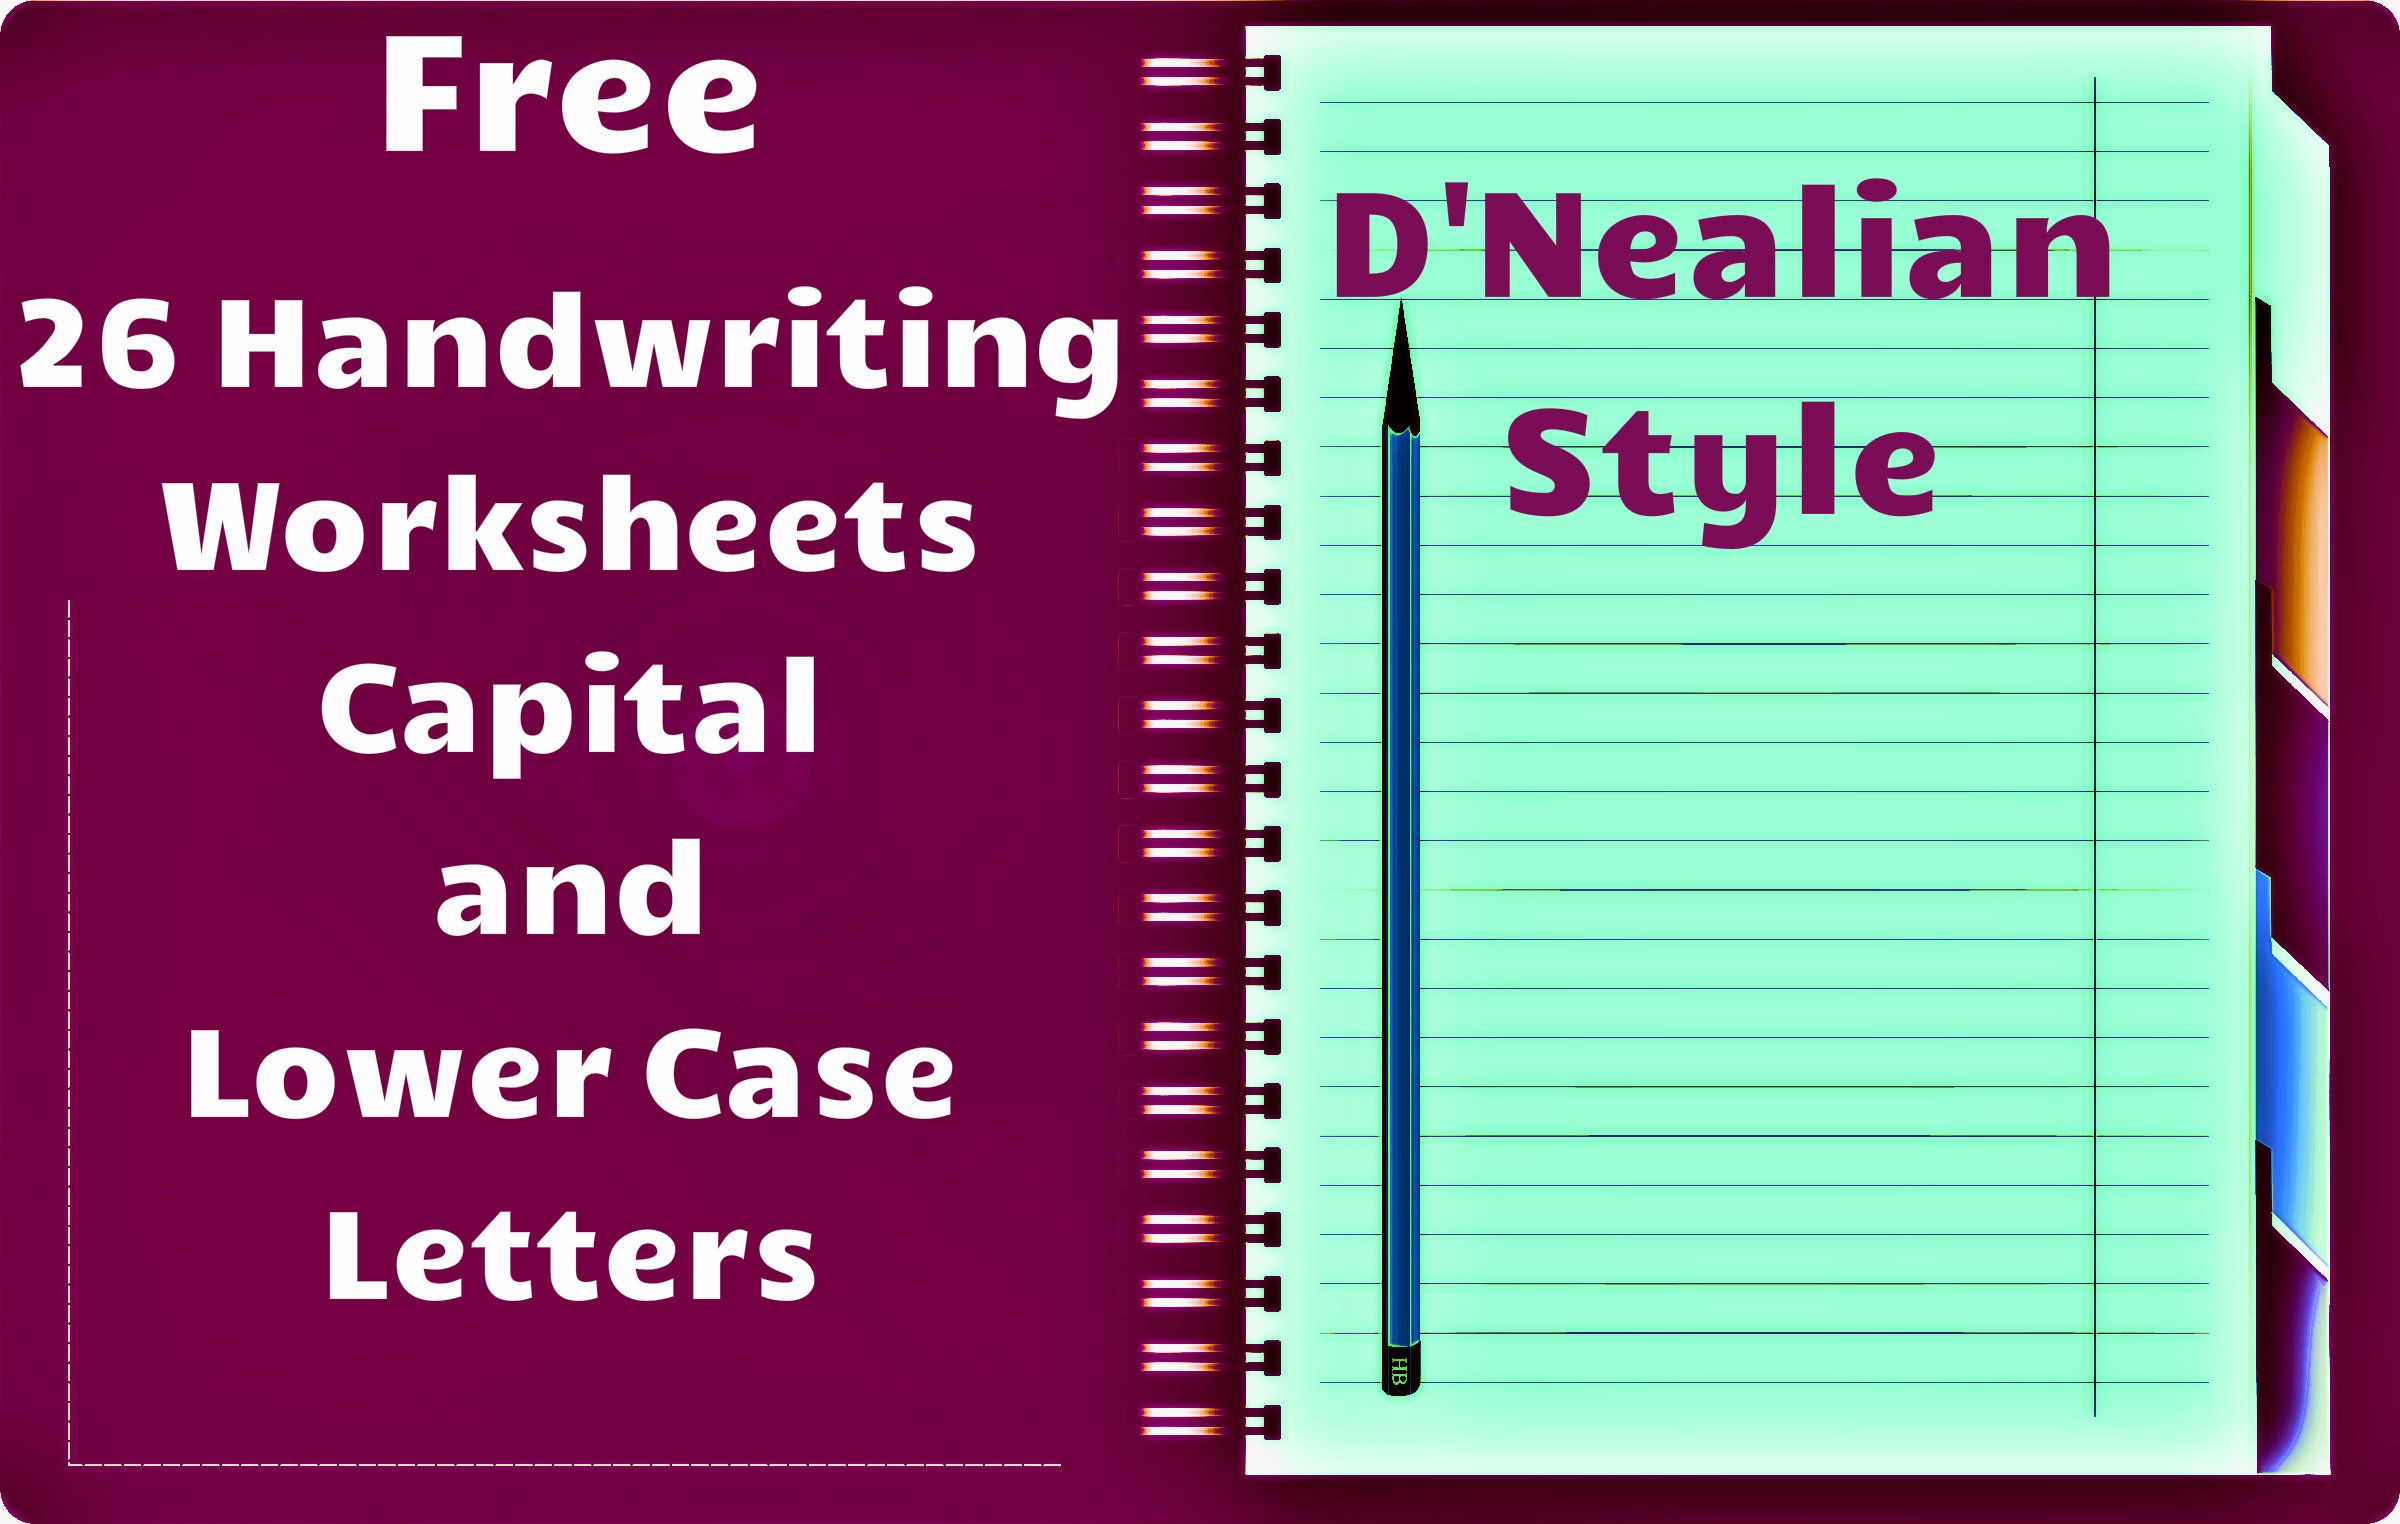 Printables Of D Nealian Handwriting Worksheets Free